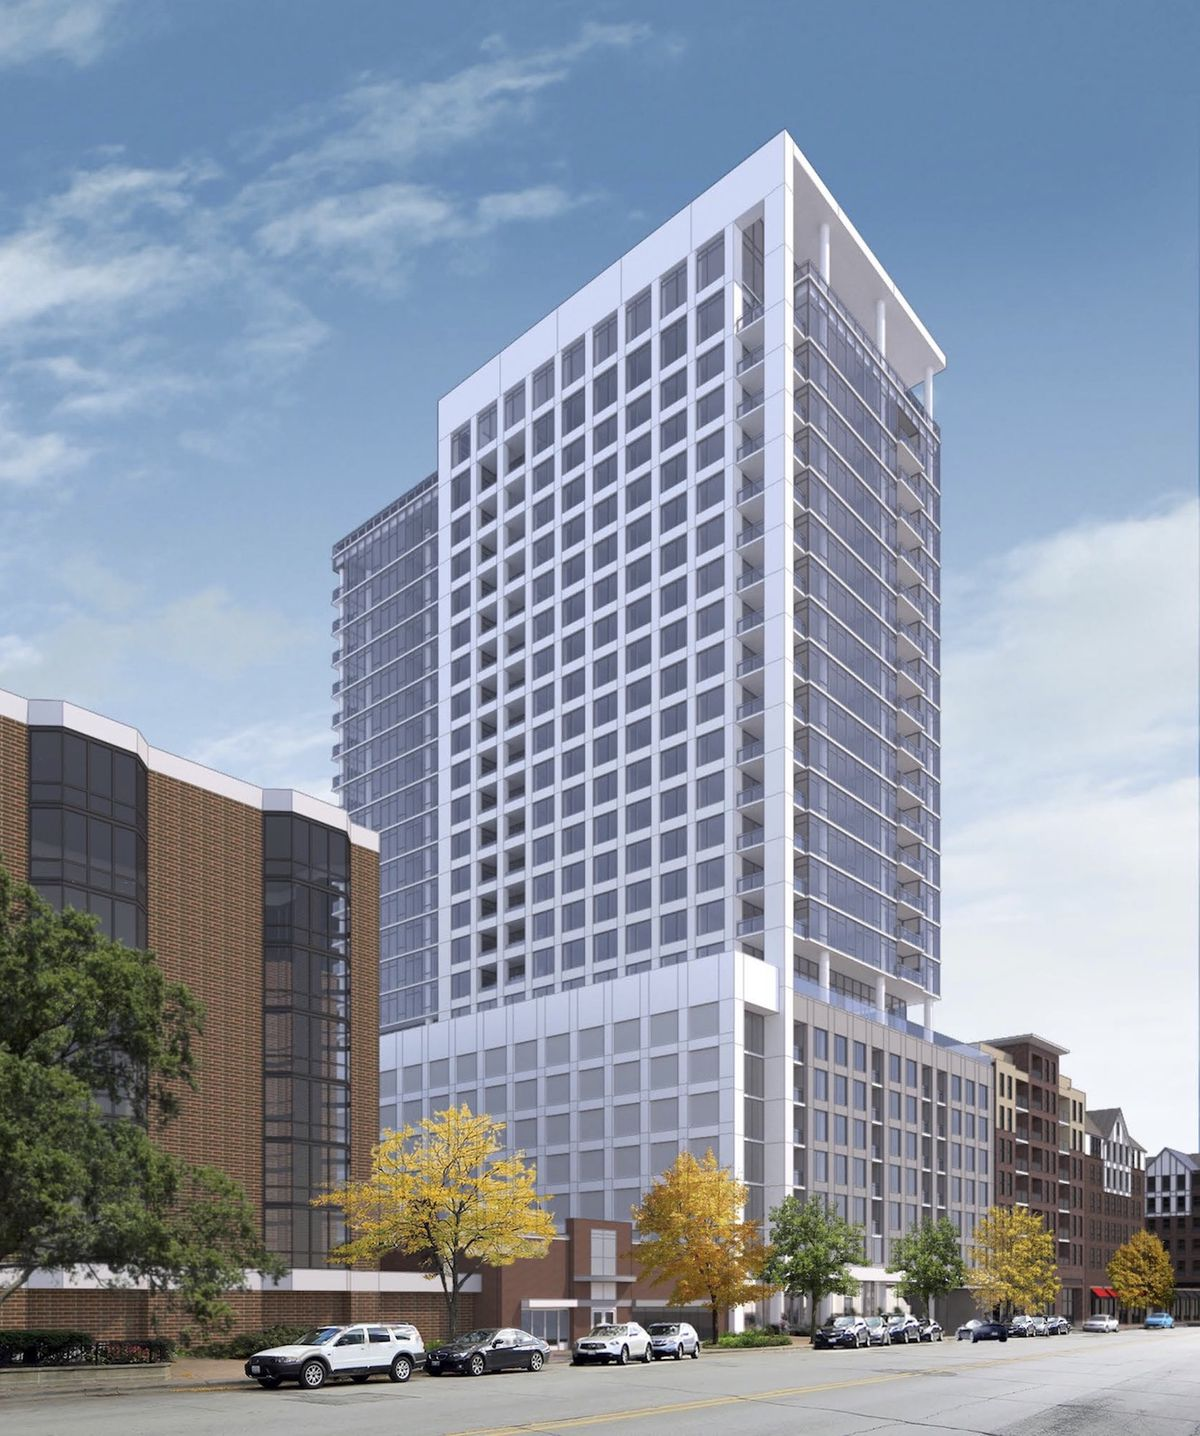 High-rise Proposal For Downtown Evanston Could Go Condo